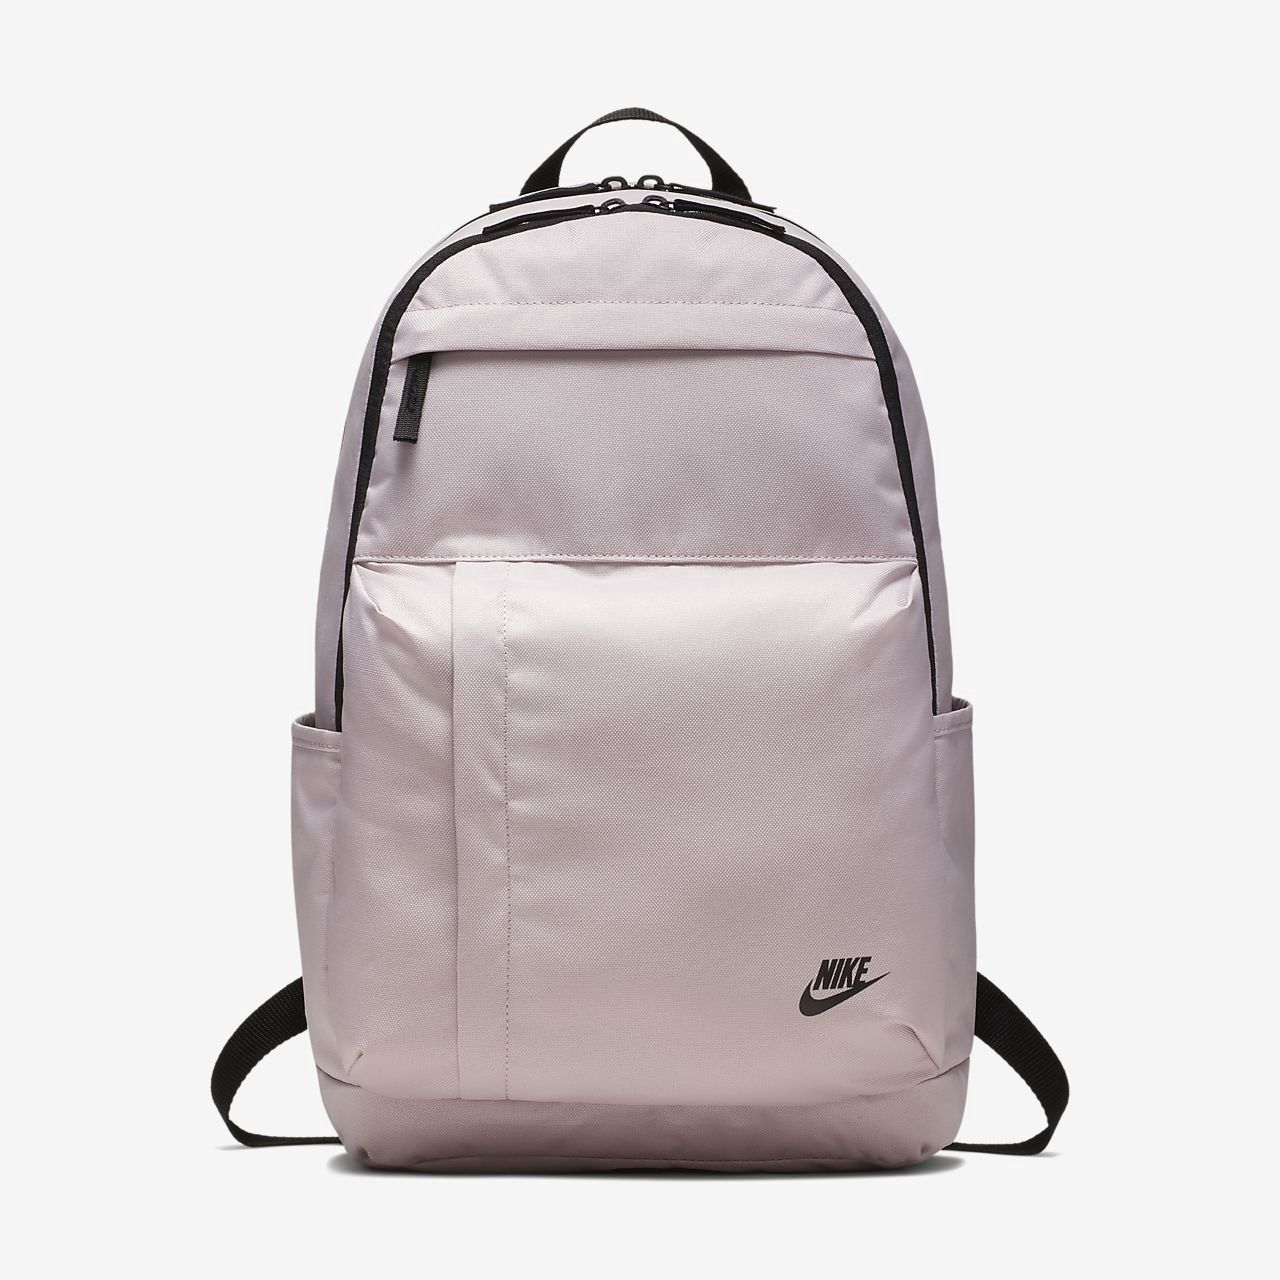 b5607ed6c1f0 Nike Elemental Backpack - One Size Particle Rose Black Black ...